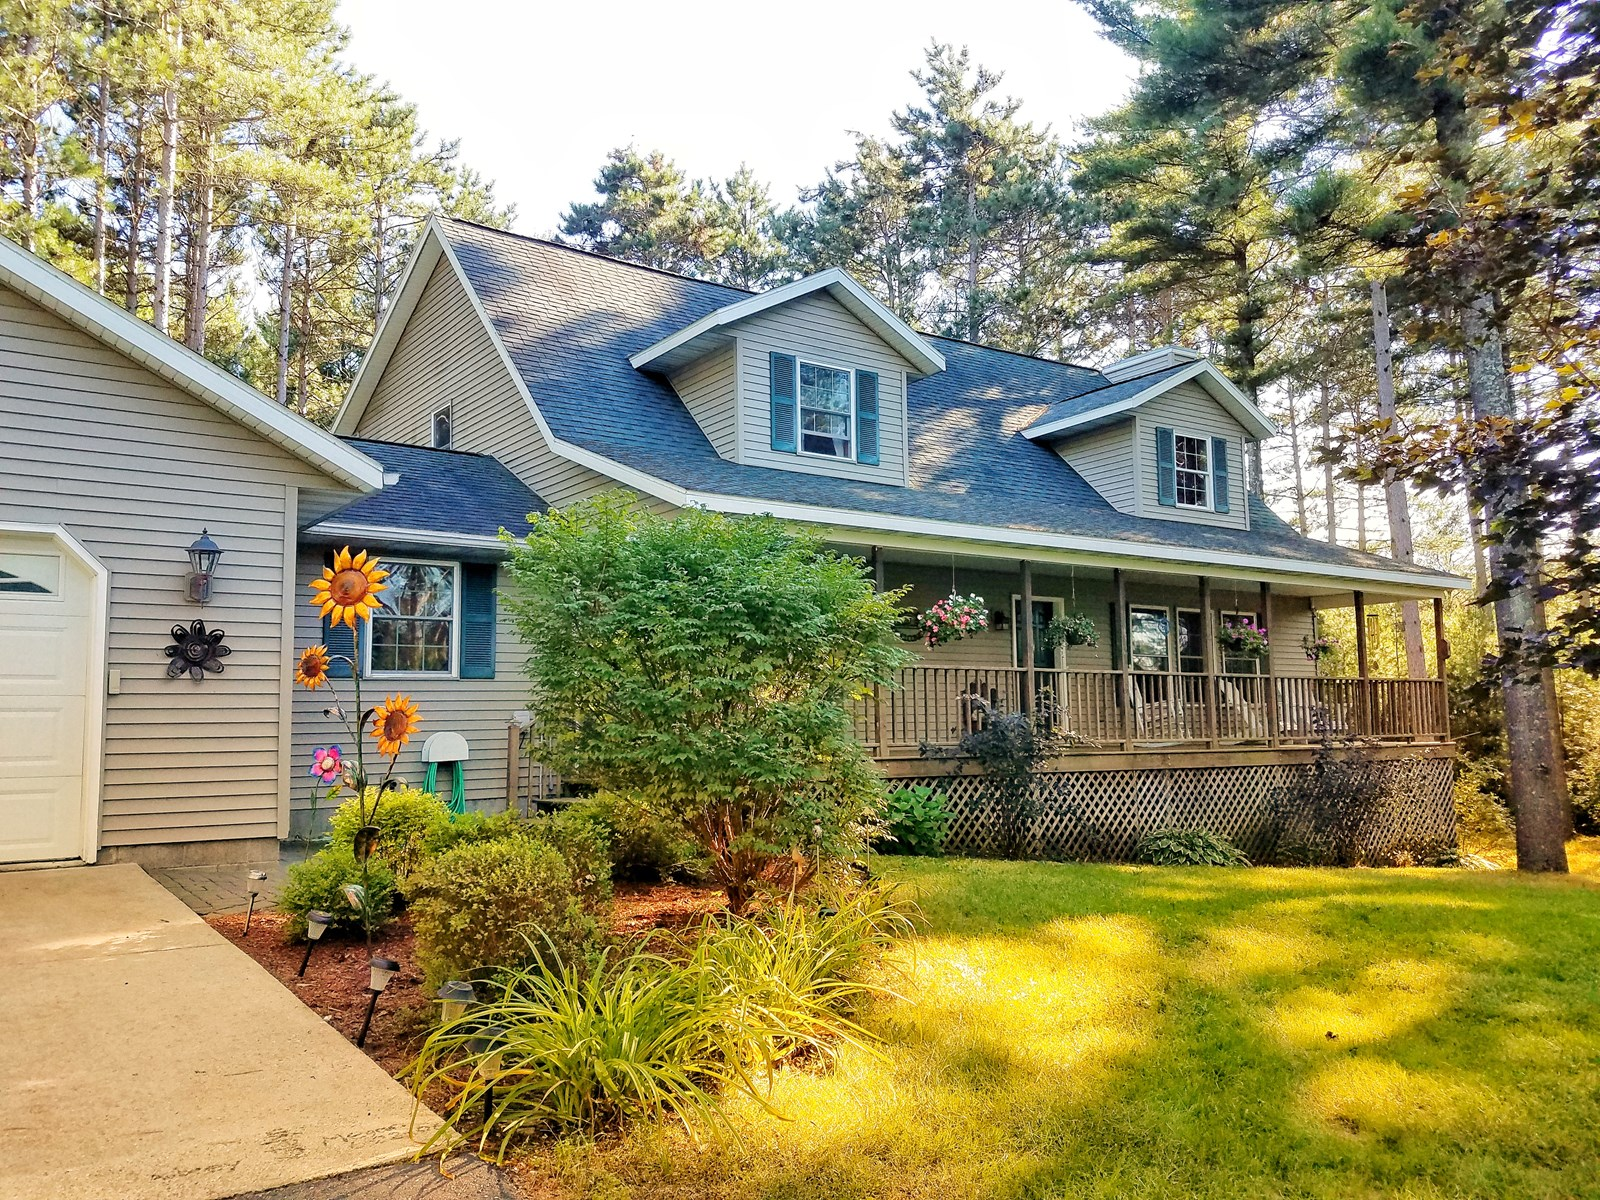 Country Home for Sale in Waupaca WI